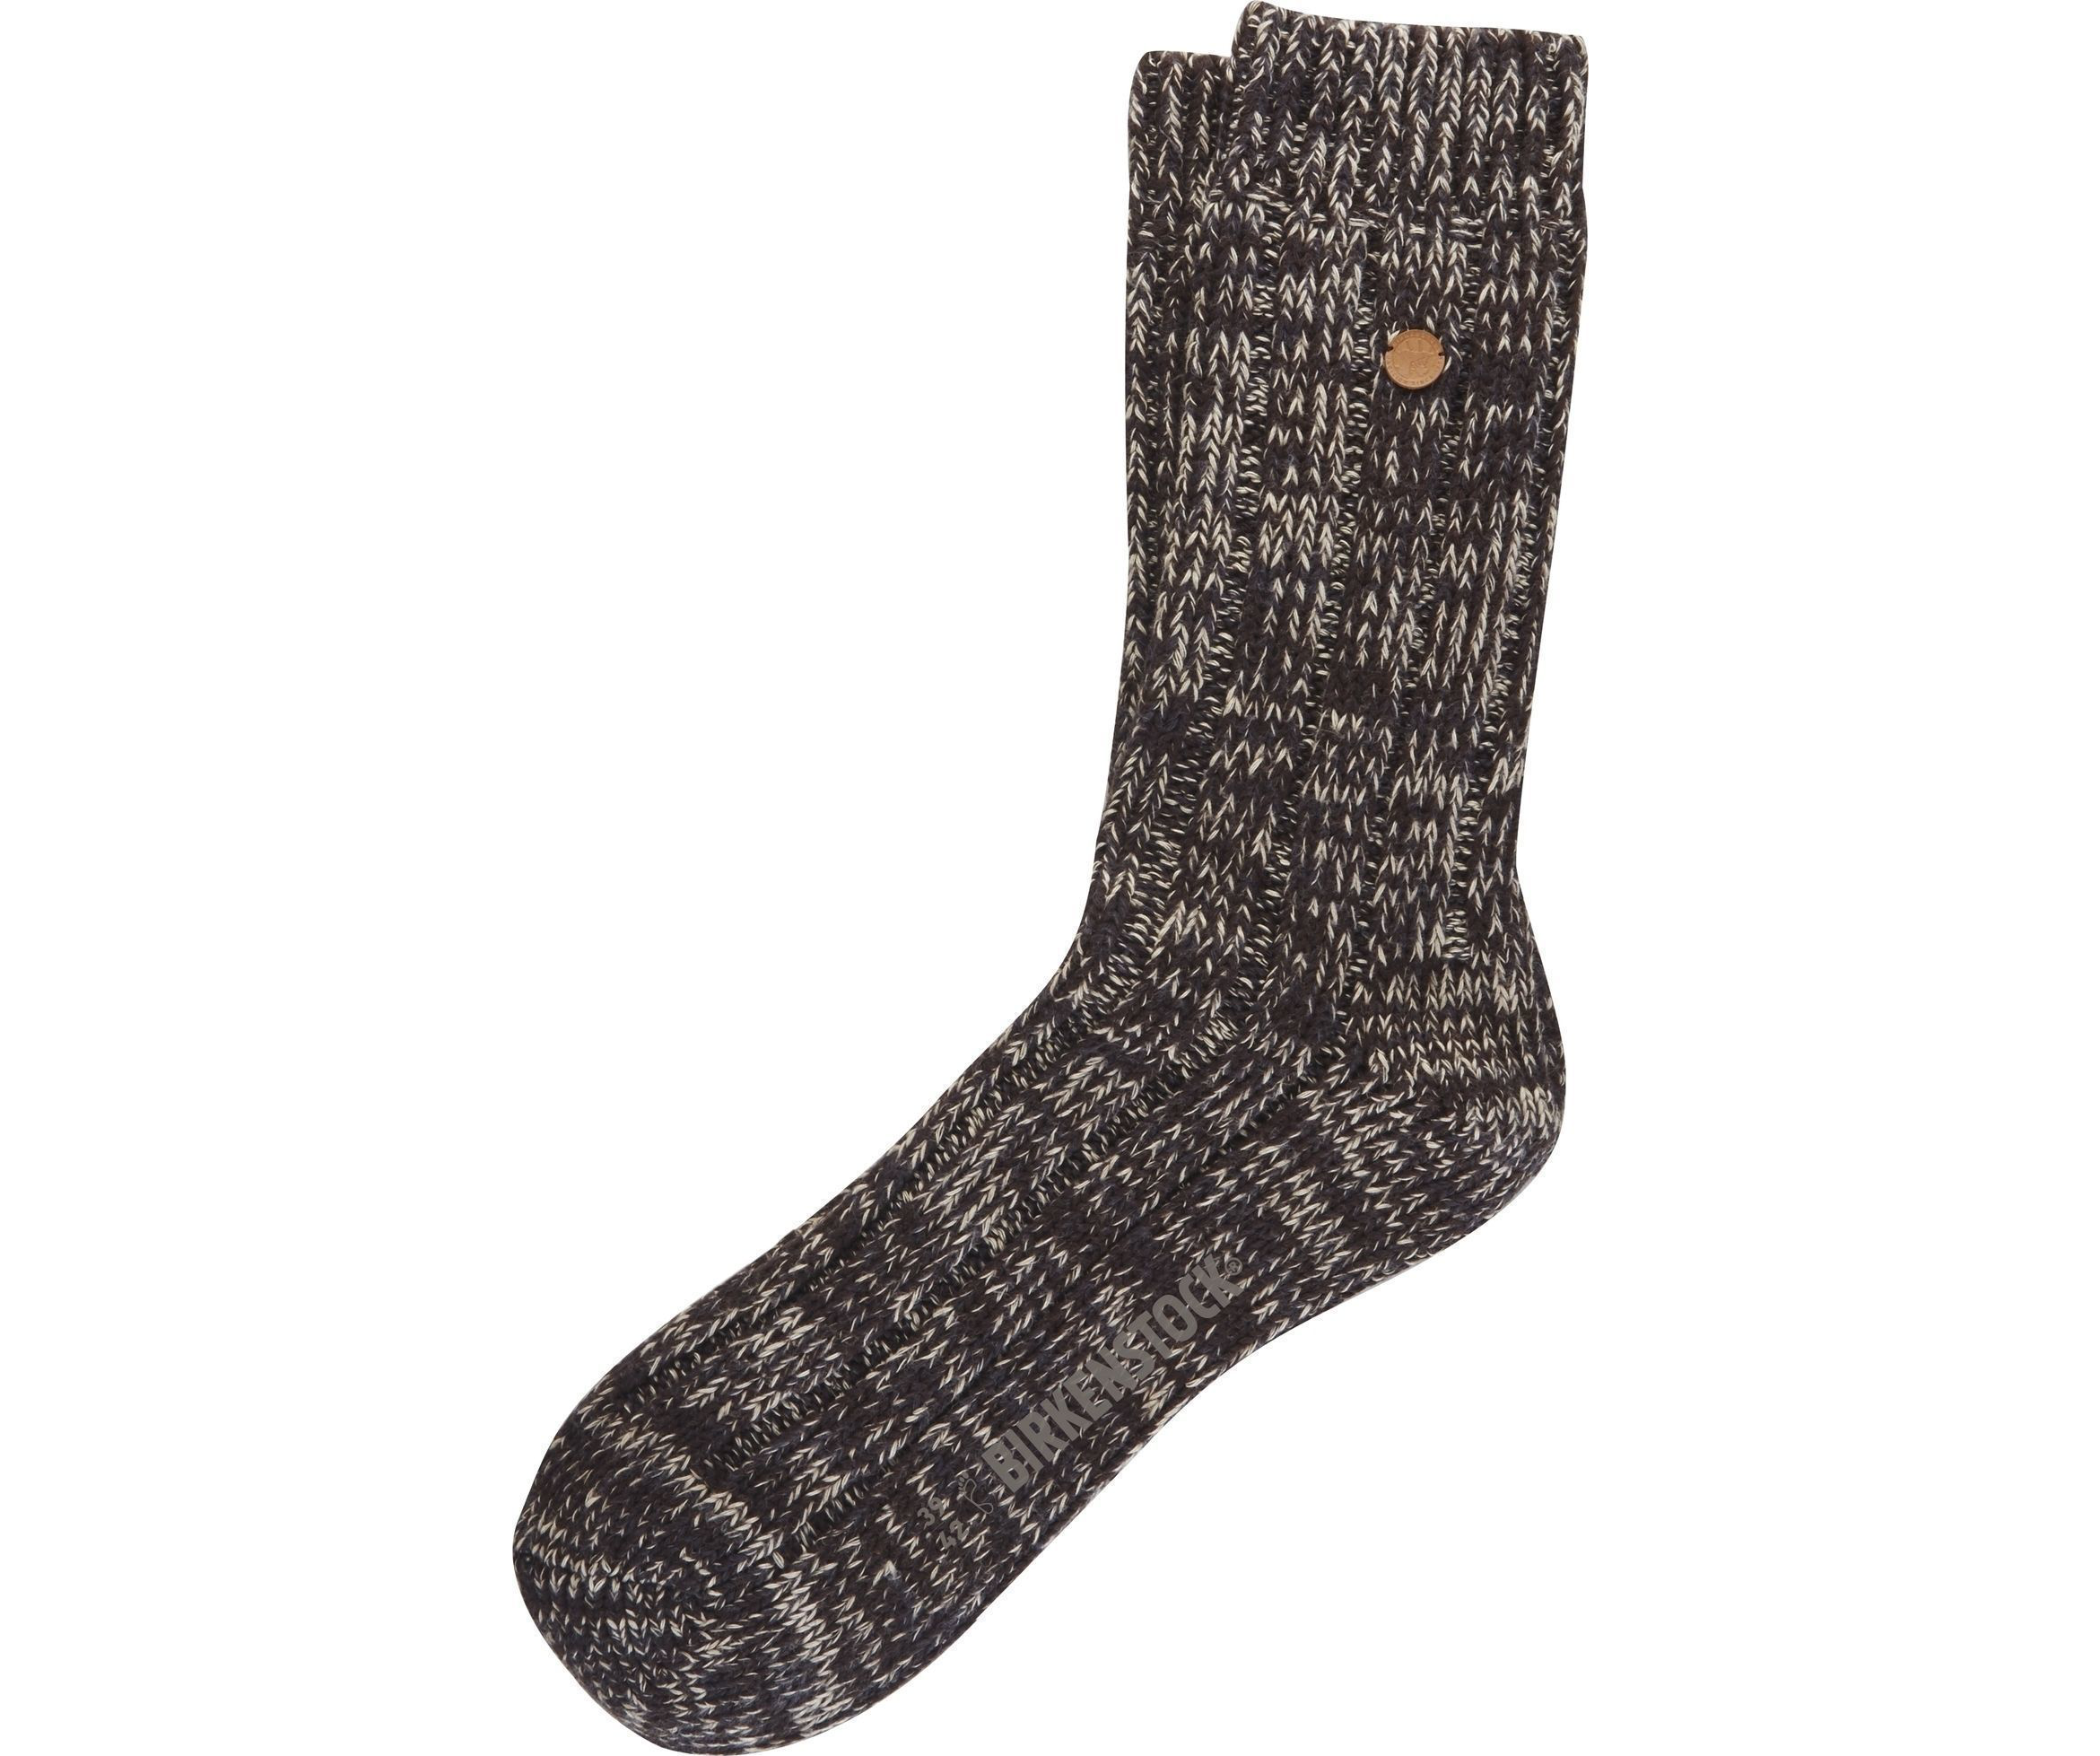 Sydney Sock - Brown Cotton Lycra